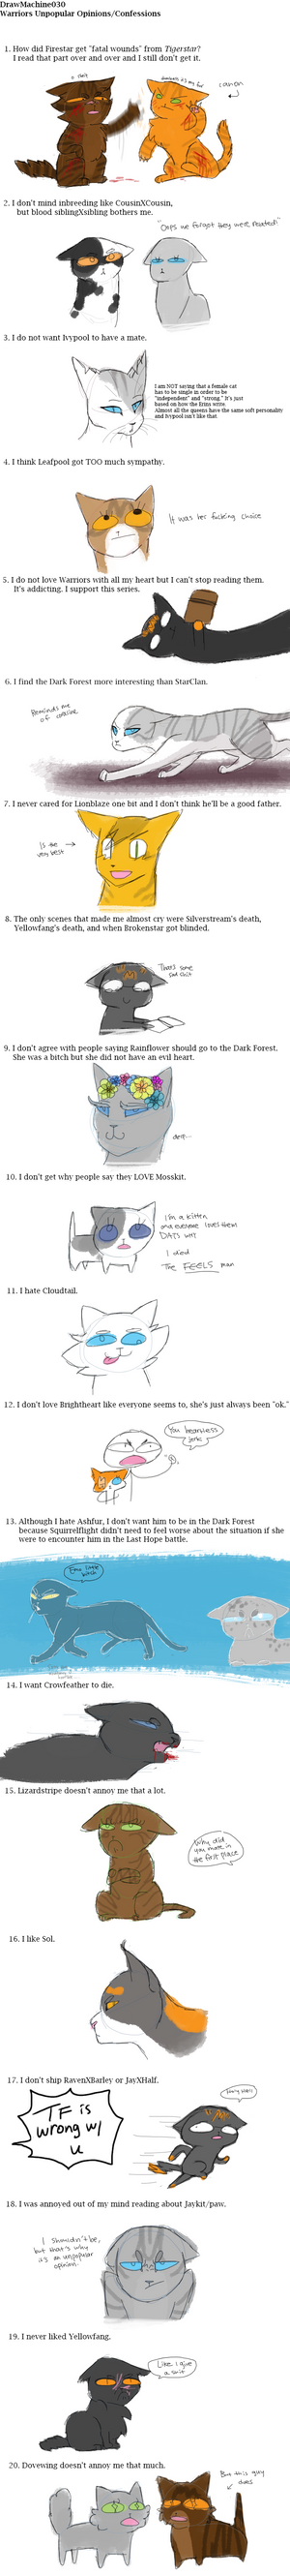 Warriors Unpopular Opinions/ Confessions by DrawMachine030